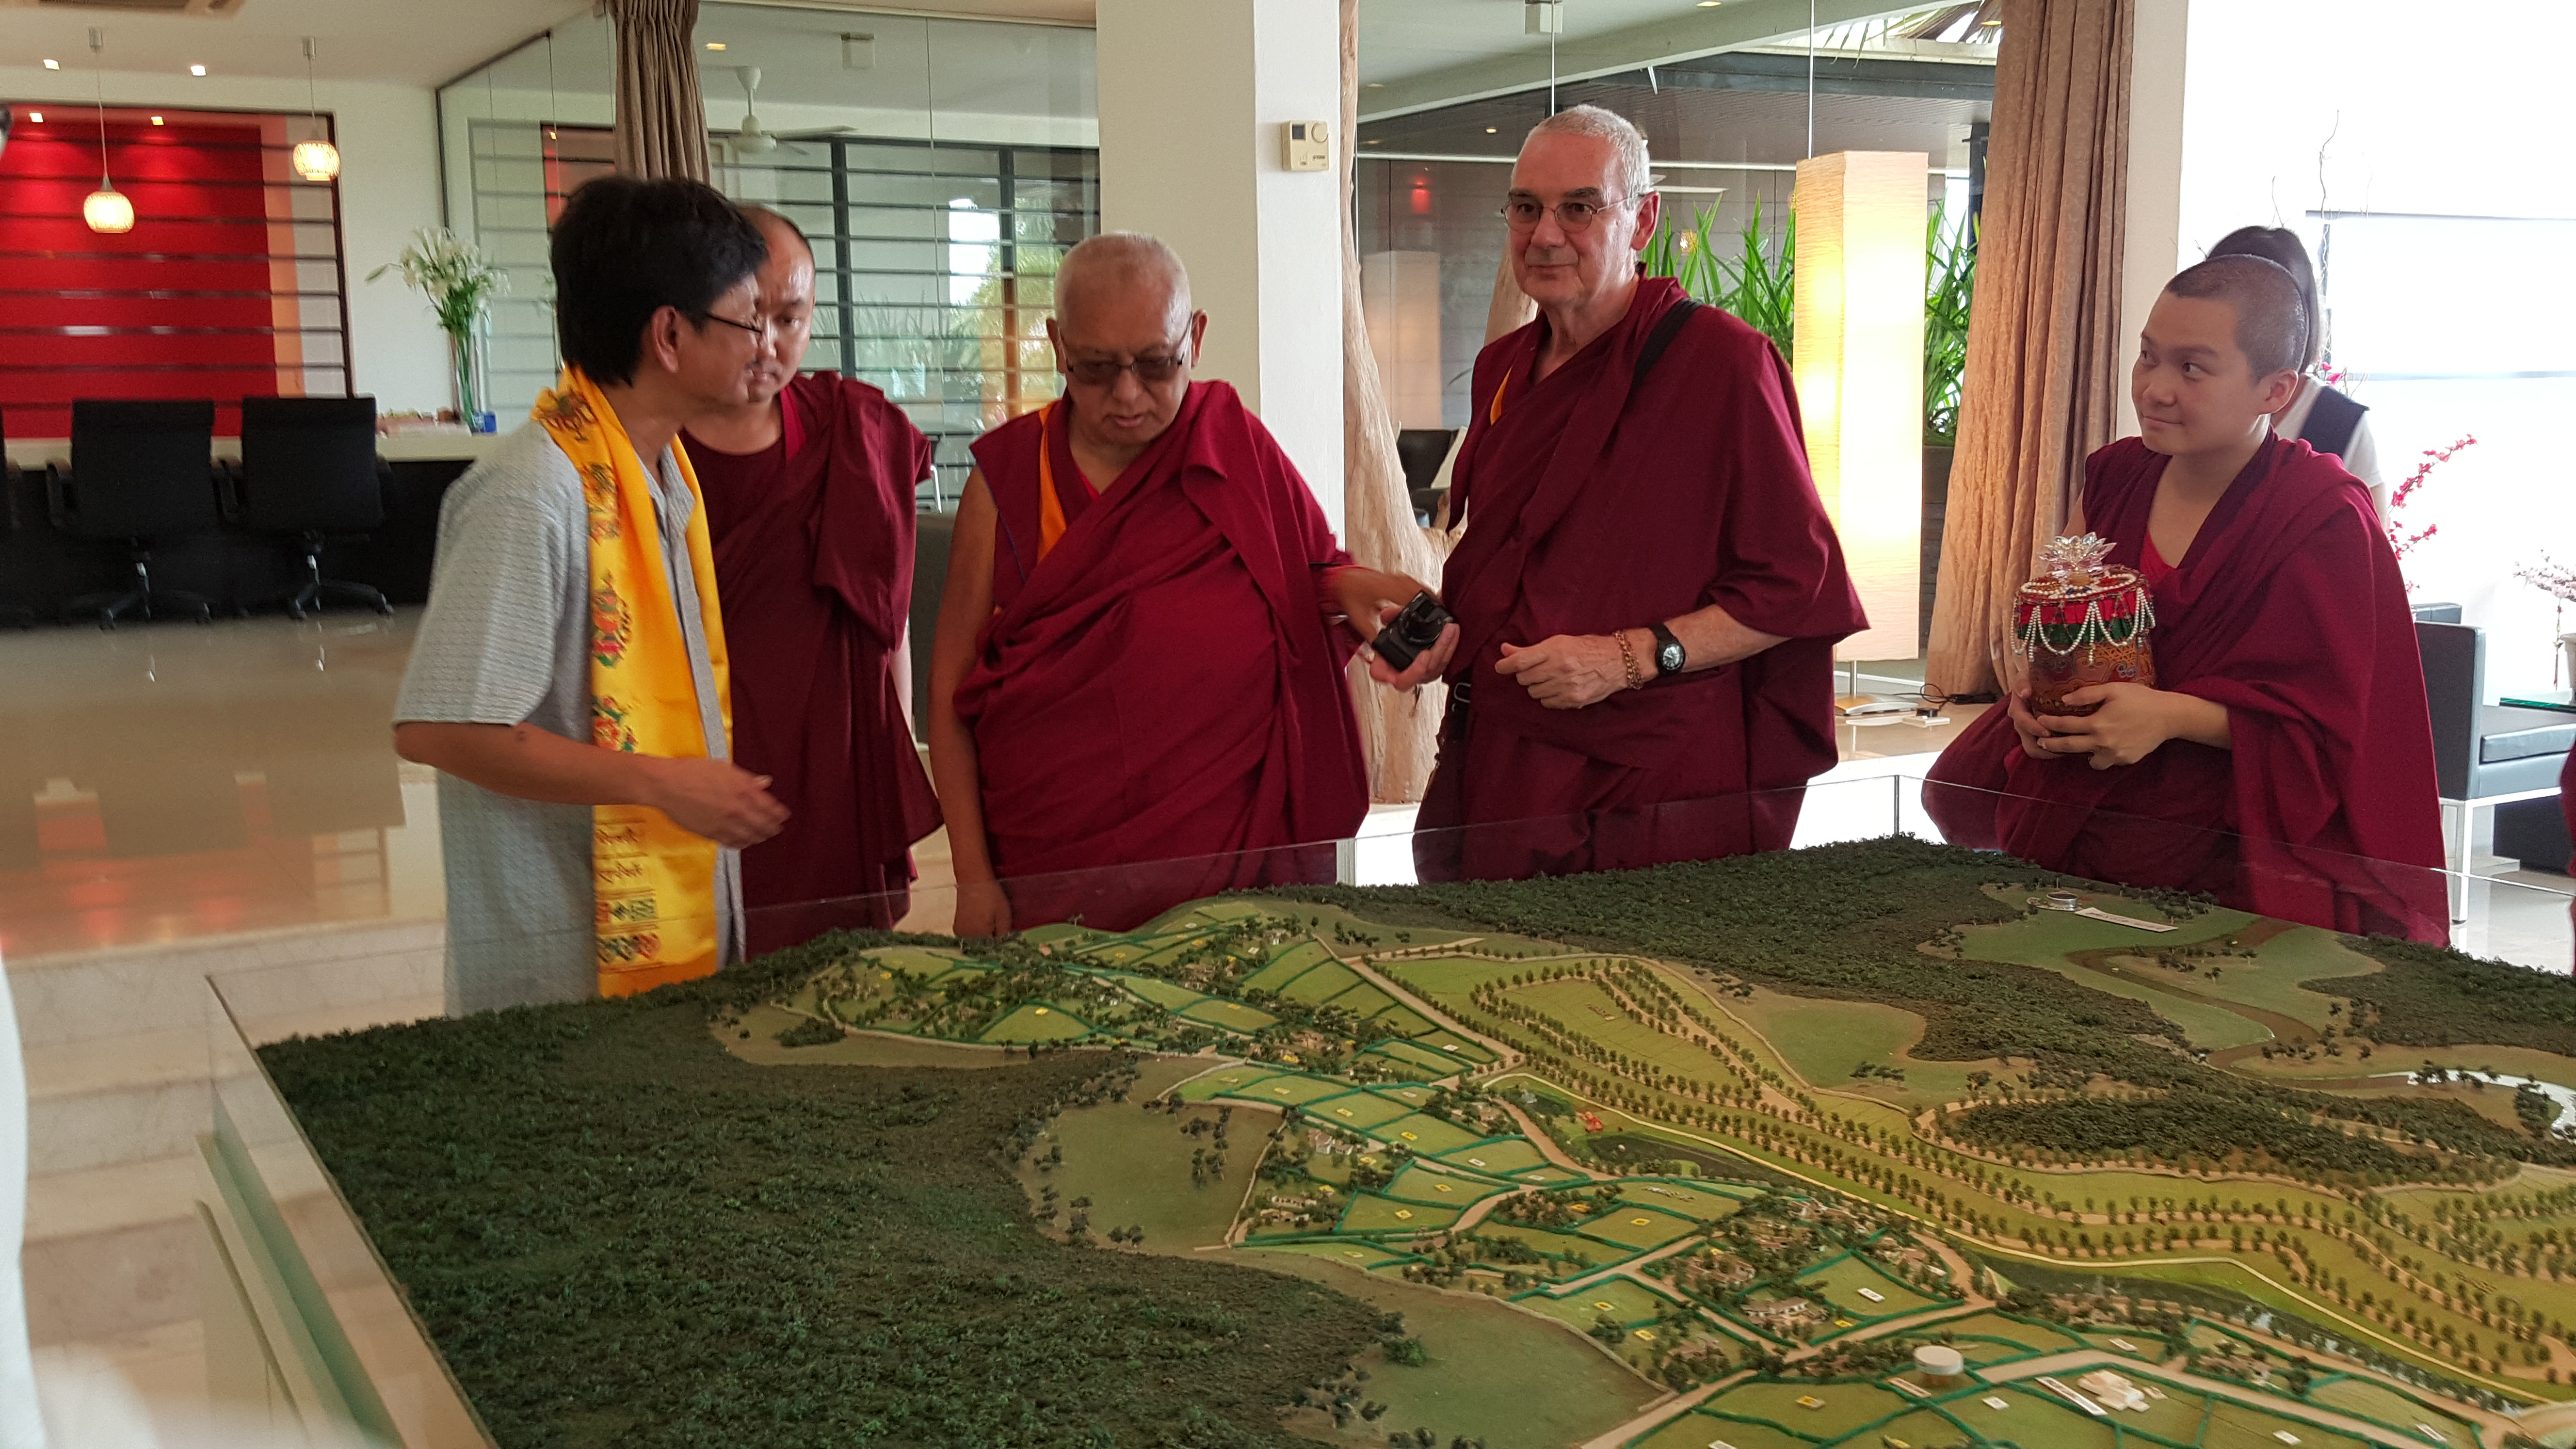 Visit by Lama Zopa Rinpoche